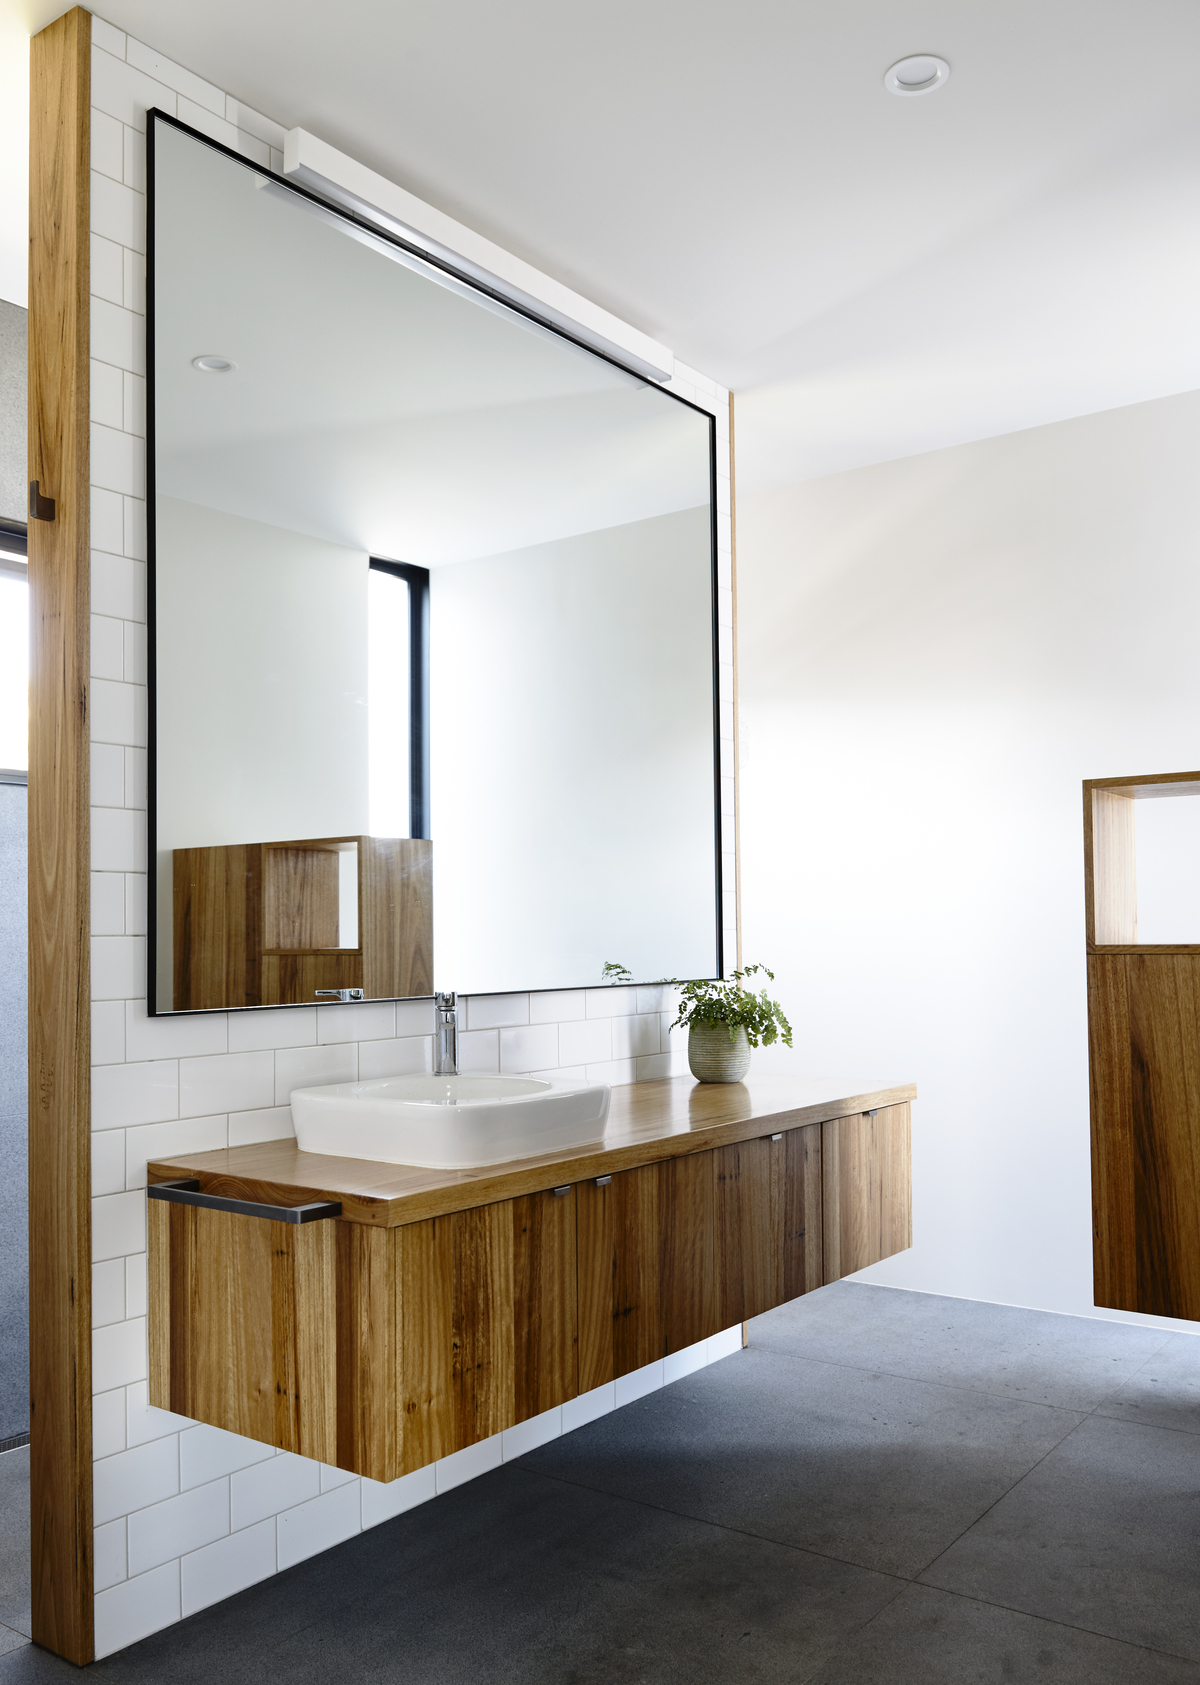 a dwelling project with wooden addition by ola studio 14 a dwelling project with wooden addition by Ola Studio